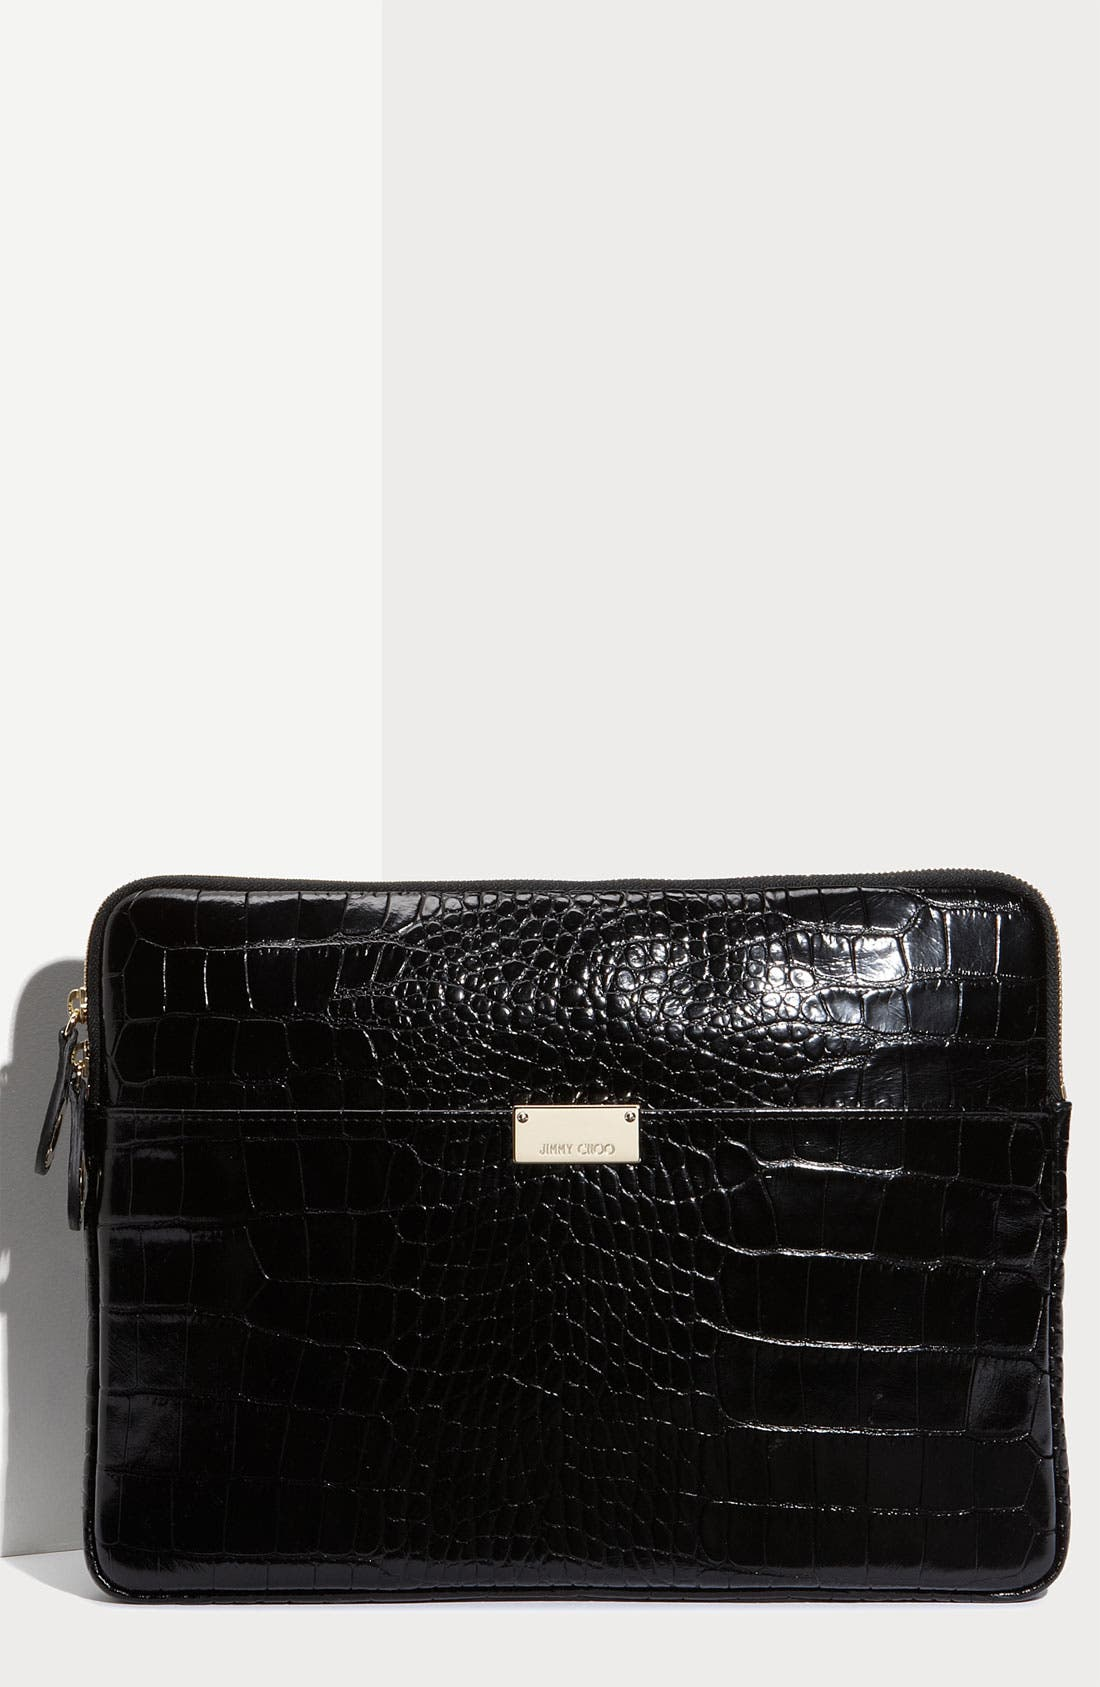 Main Image - Jimmy Choo 'Ryan - Moc Croc' Embossed Laptop Pouch (13 Inch)